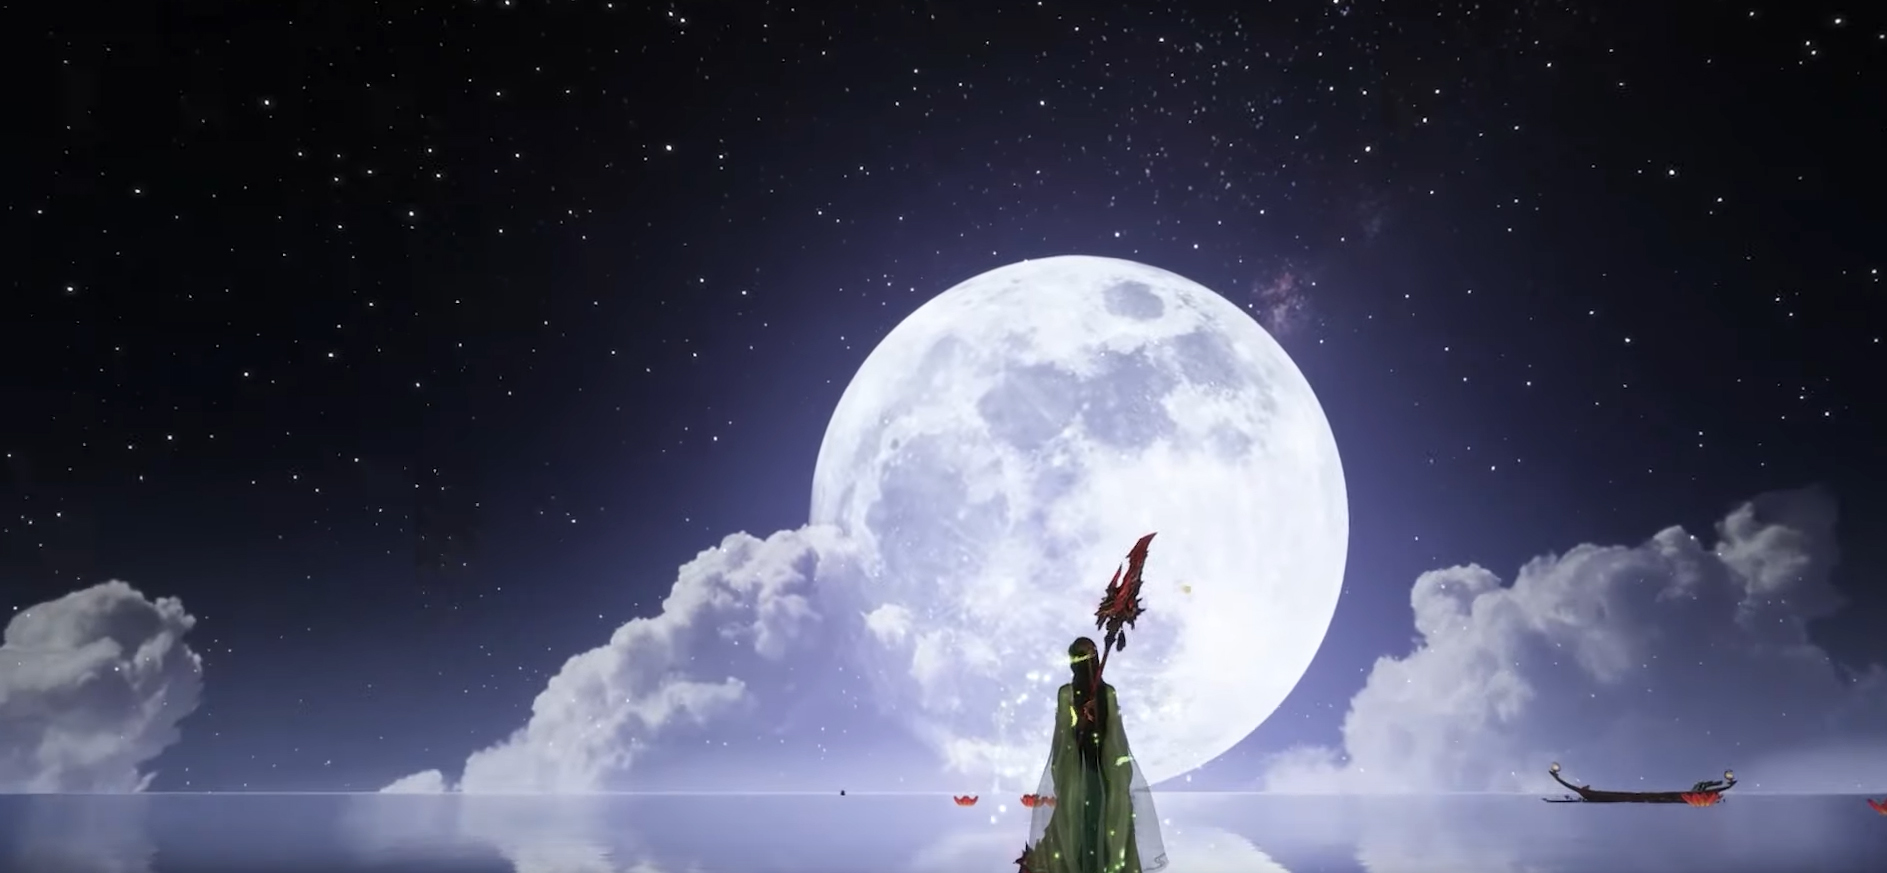 Sword of Legends Online Celebrates the Moon Festival With the Latest Patch